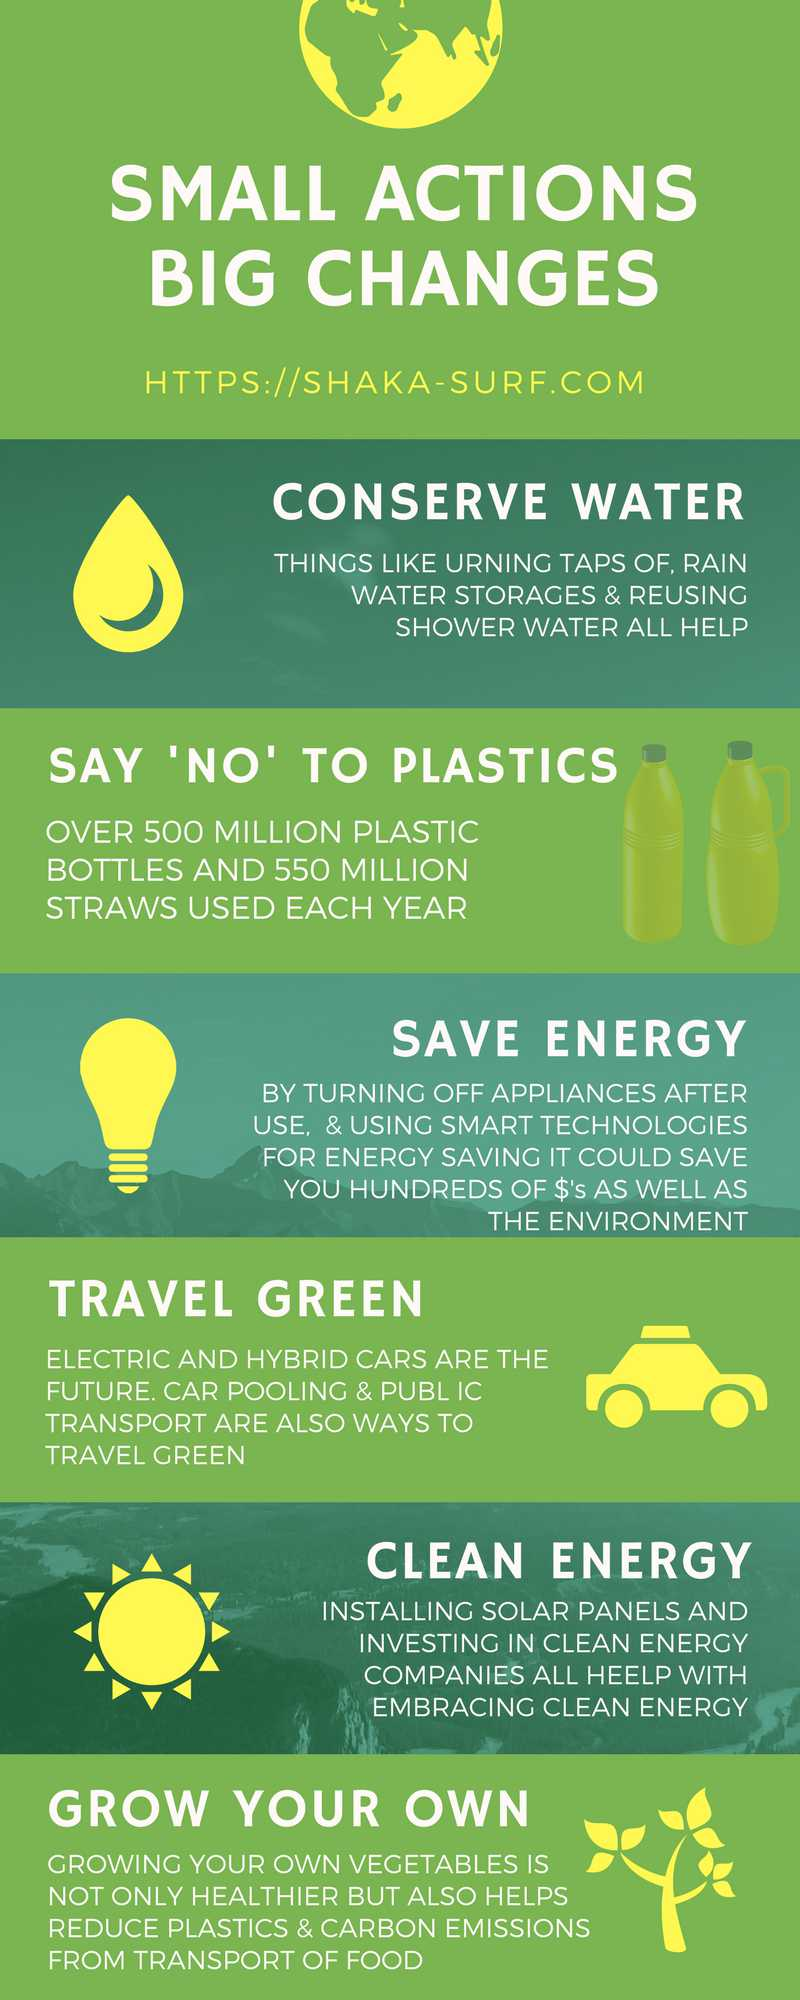 small actions big changes infographic